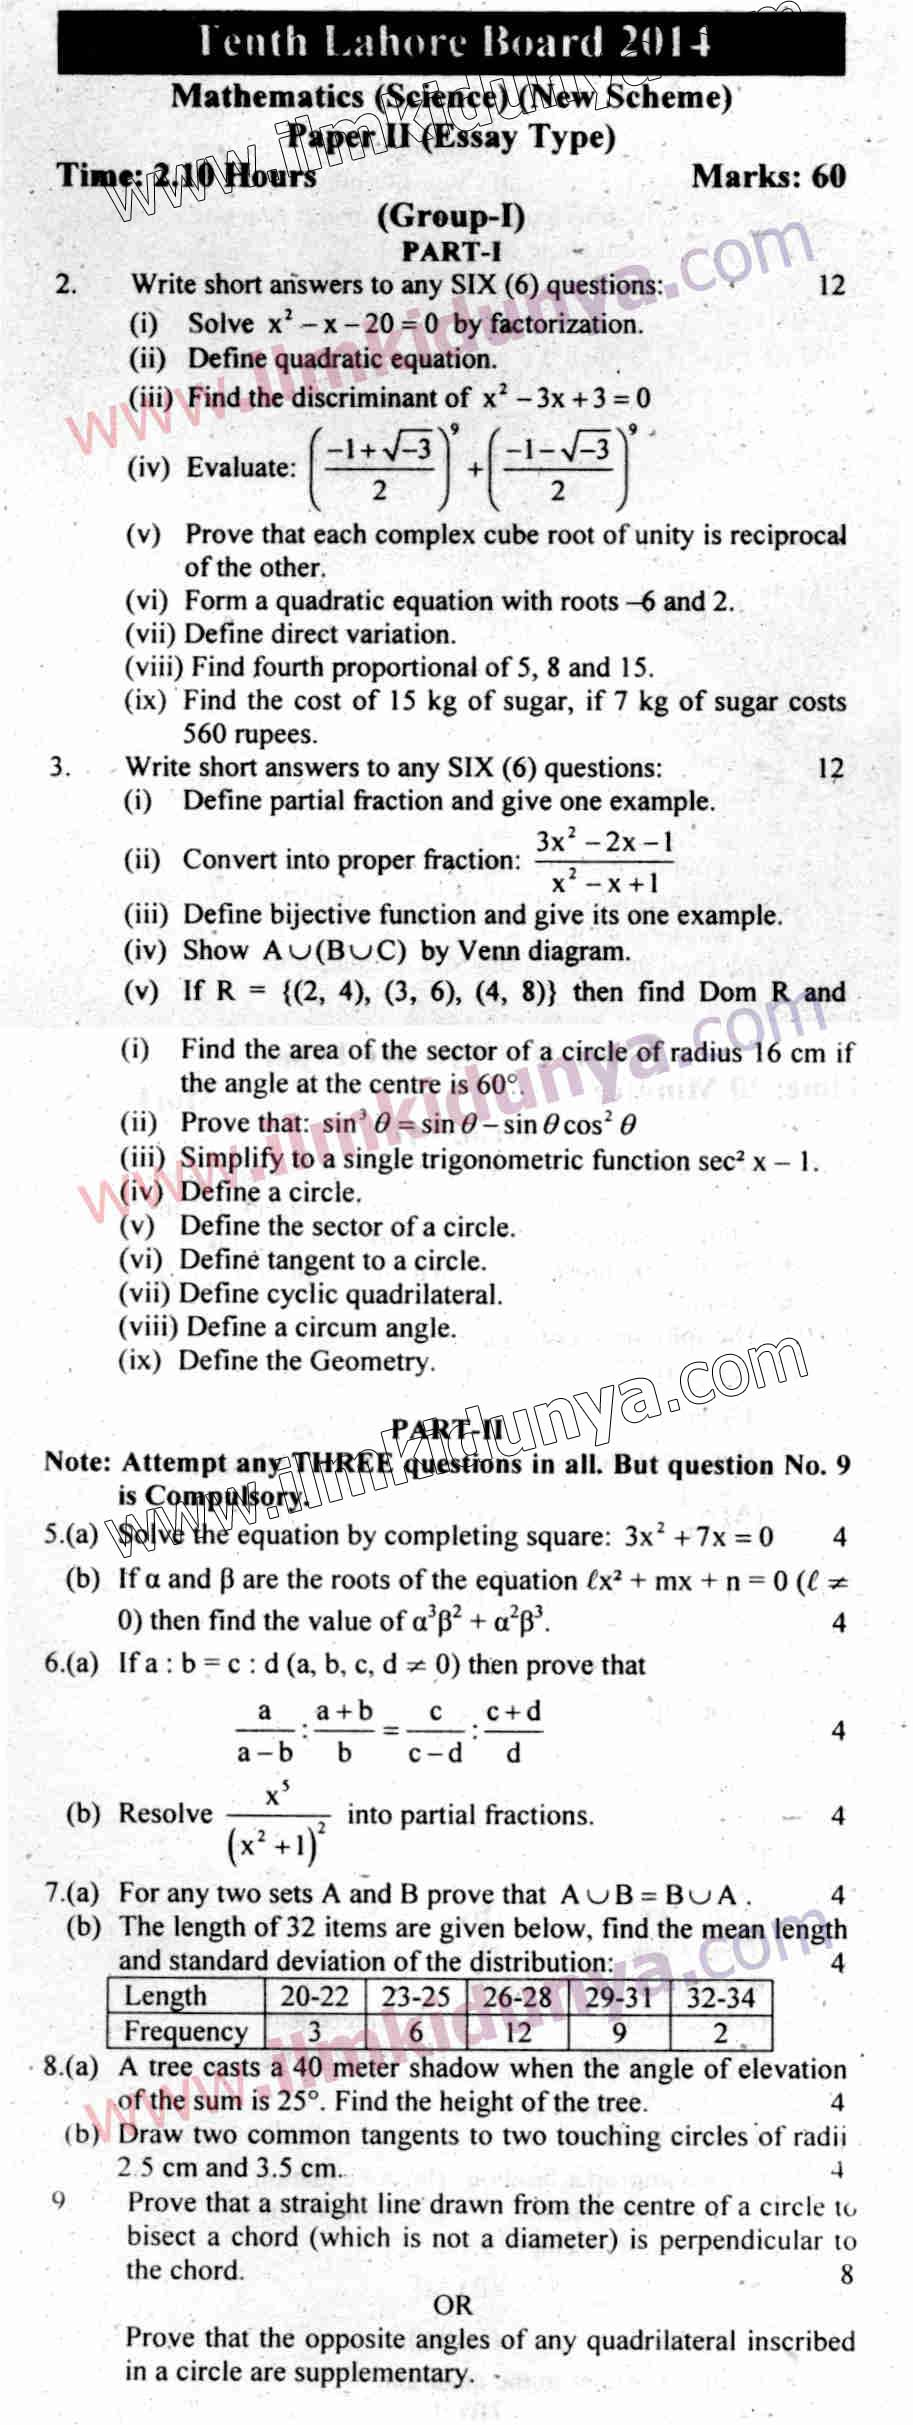 Past Papers 2014 Lahore Board 10th Class Math Subjective